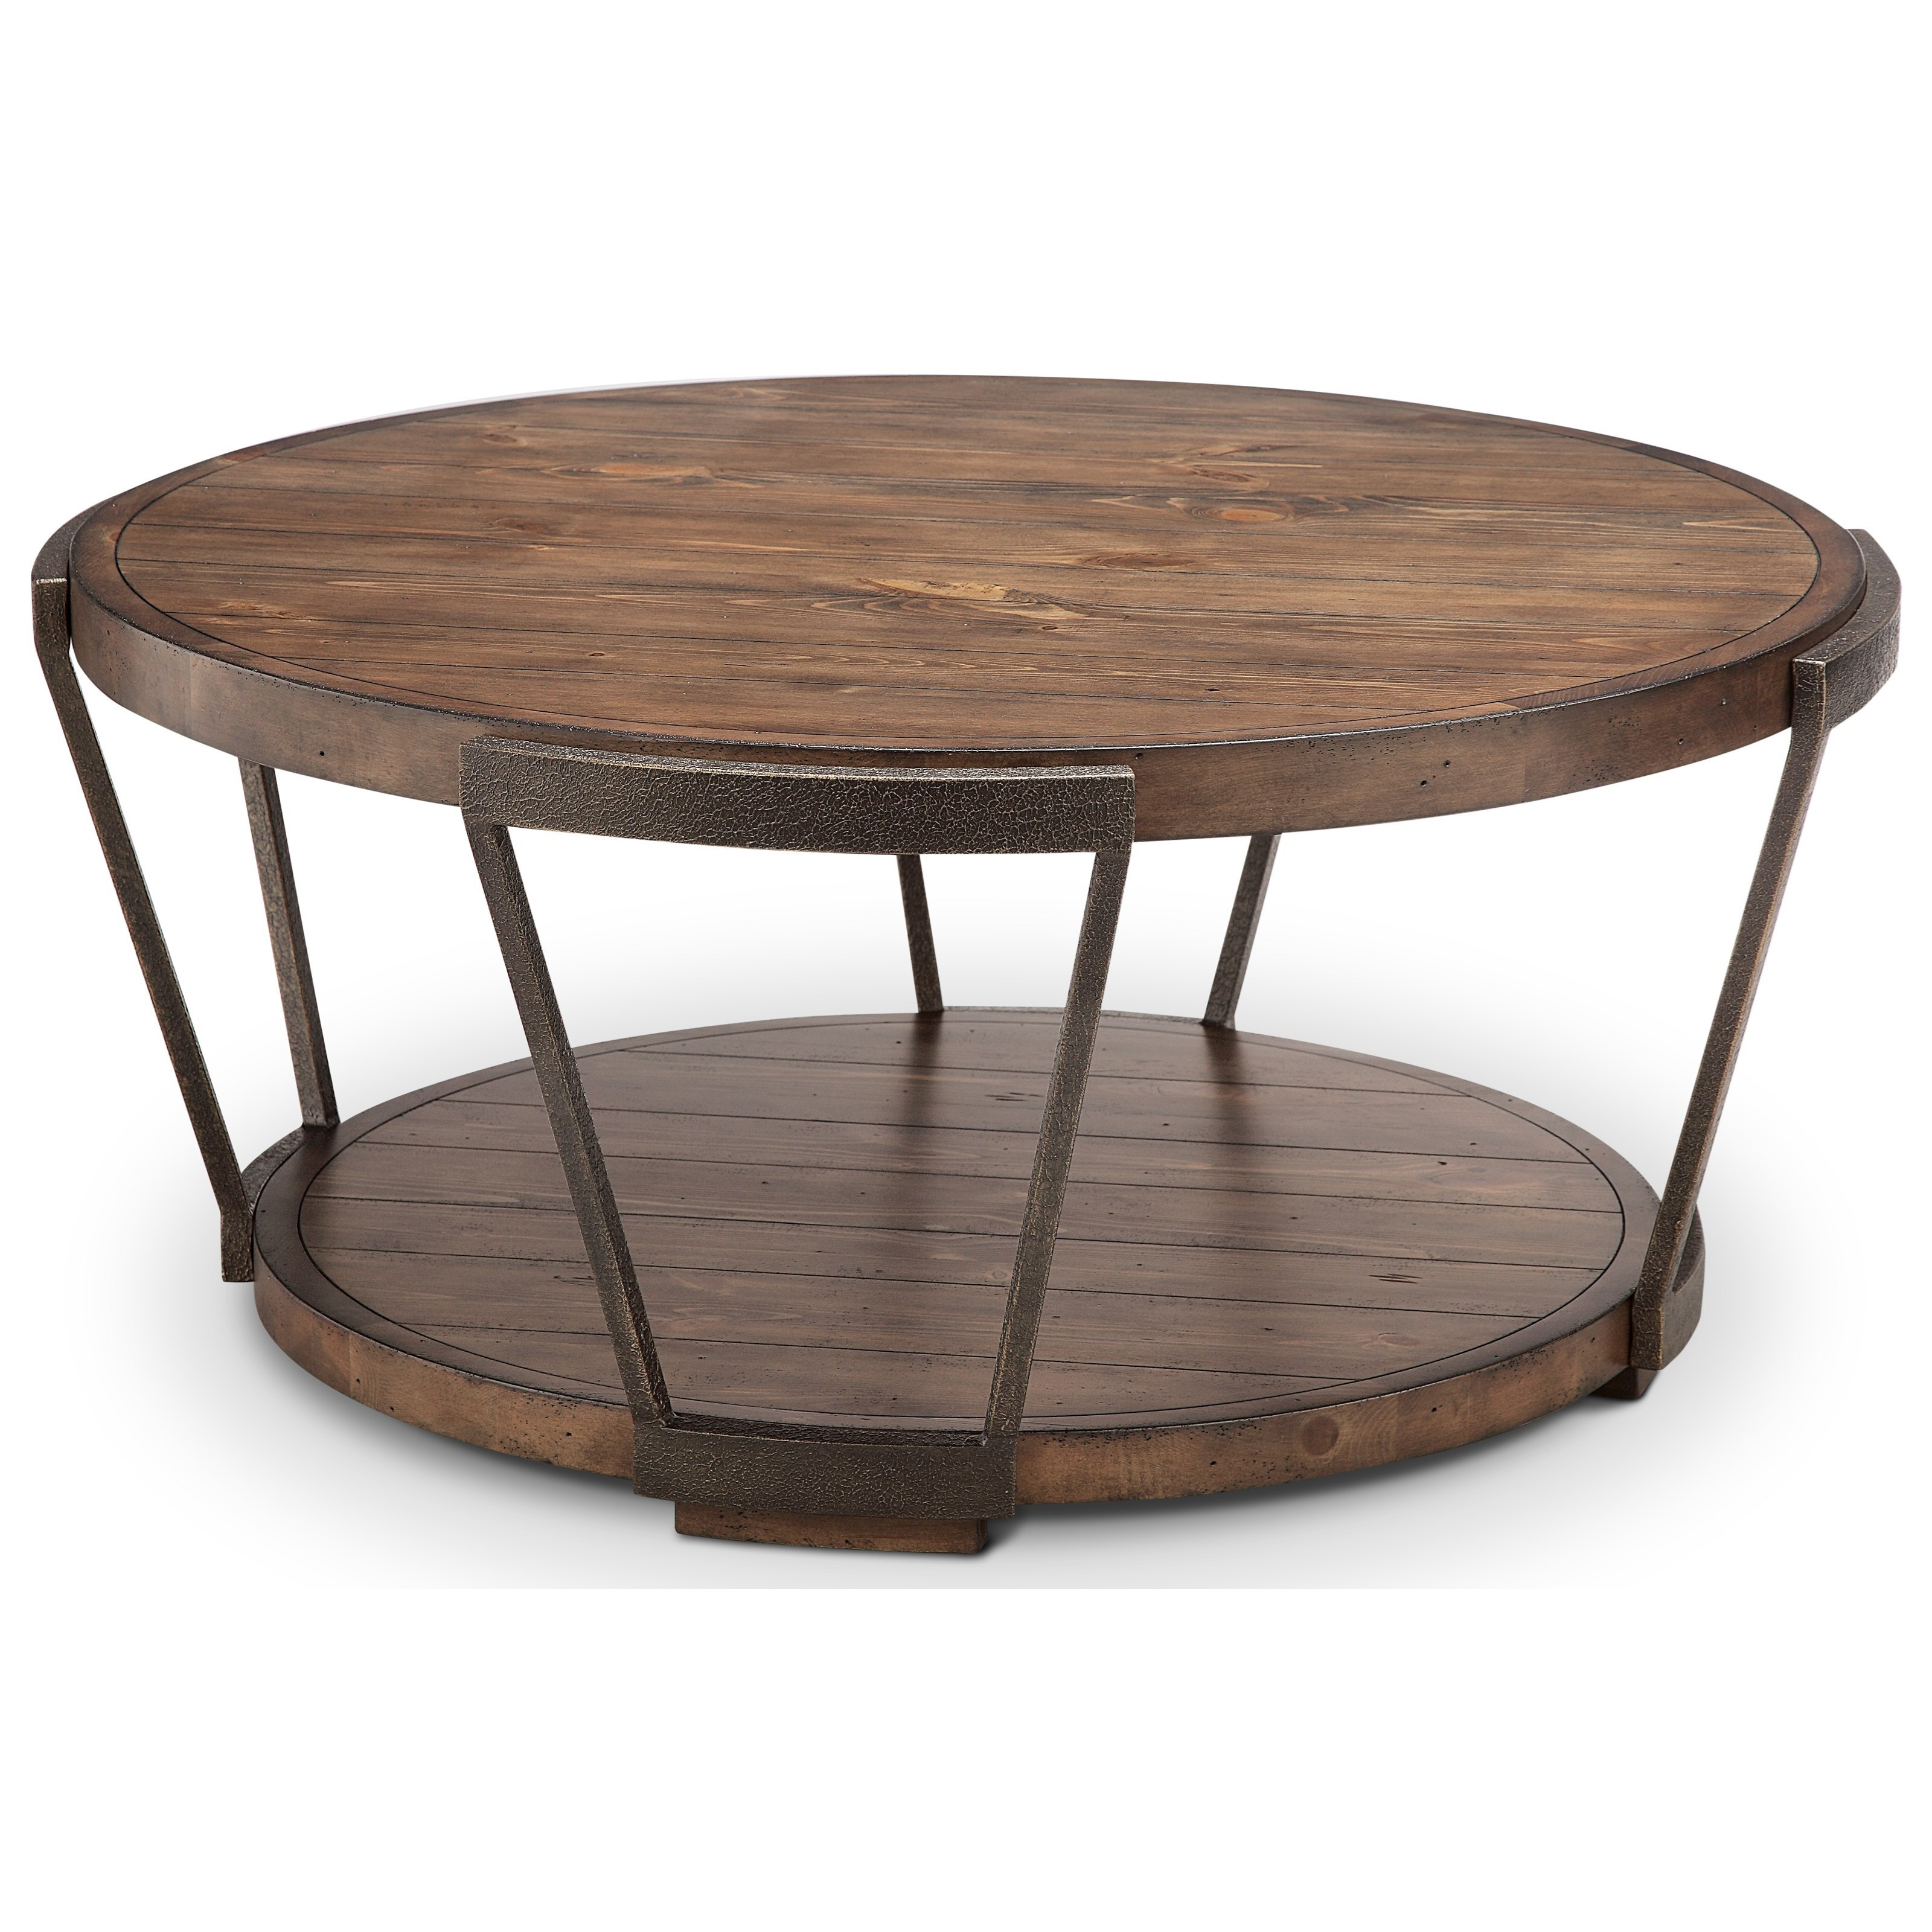 Round Cocktail Table with Casters